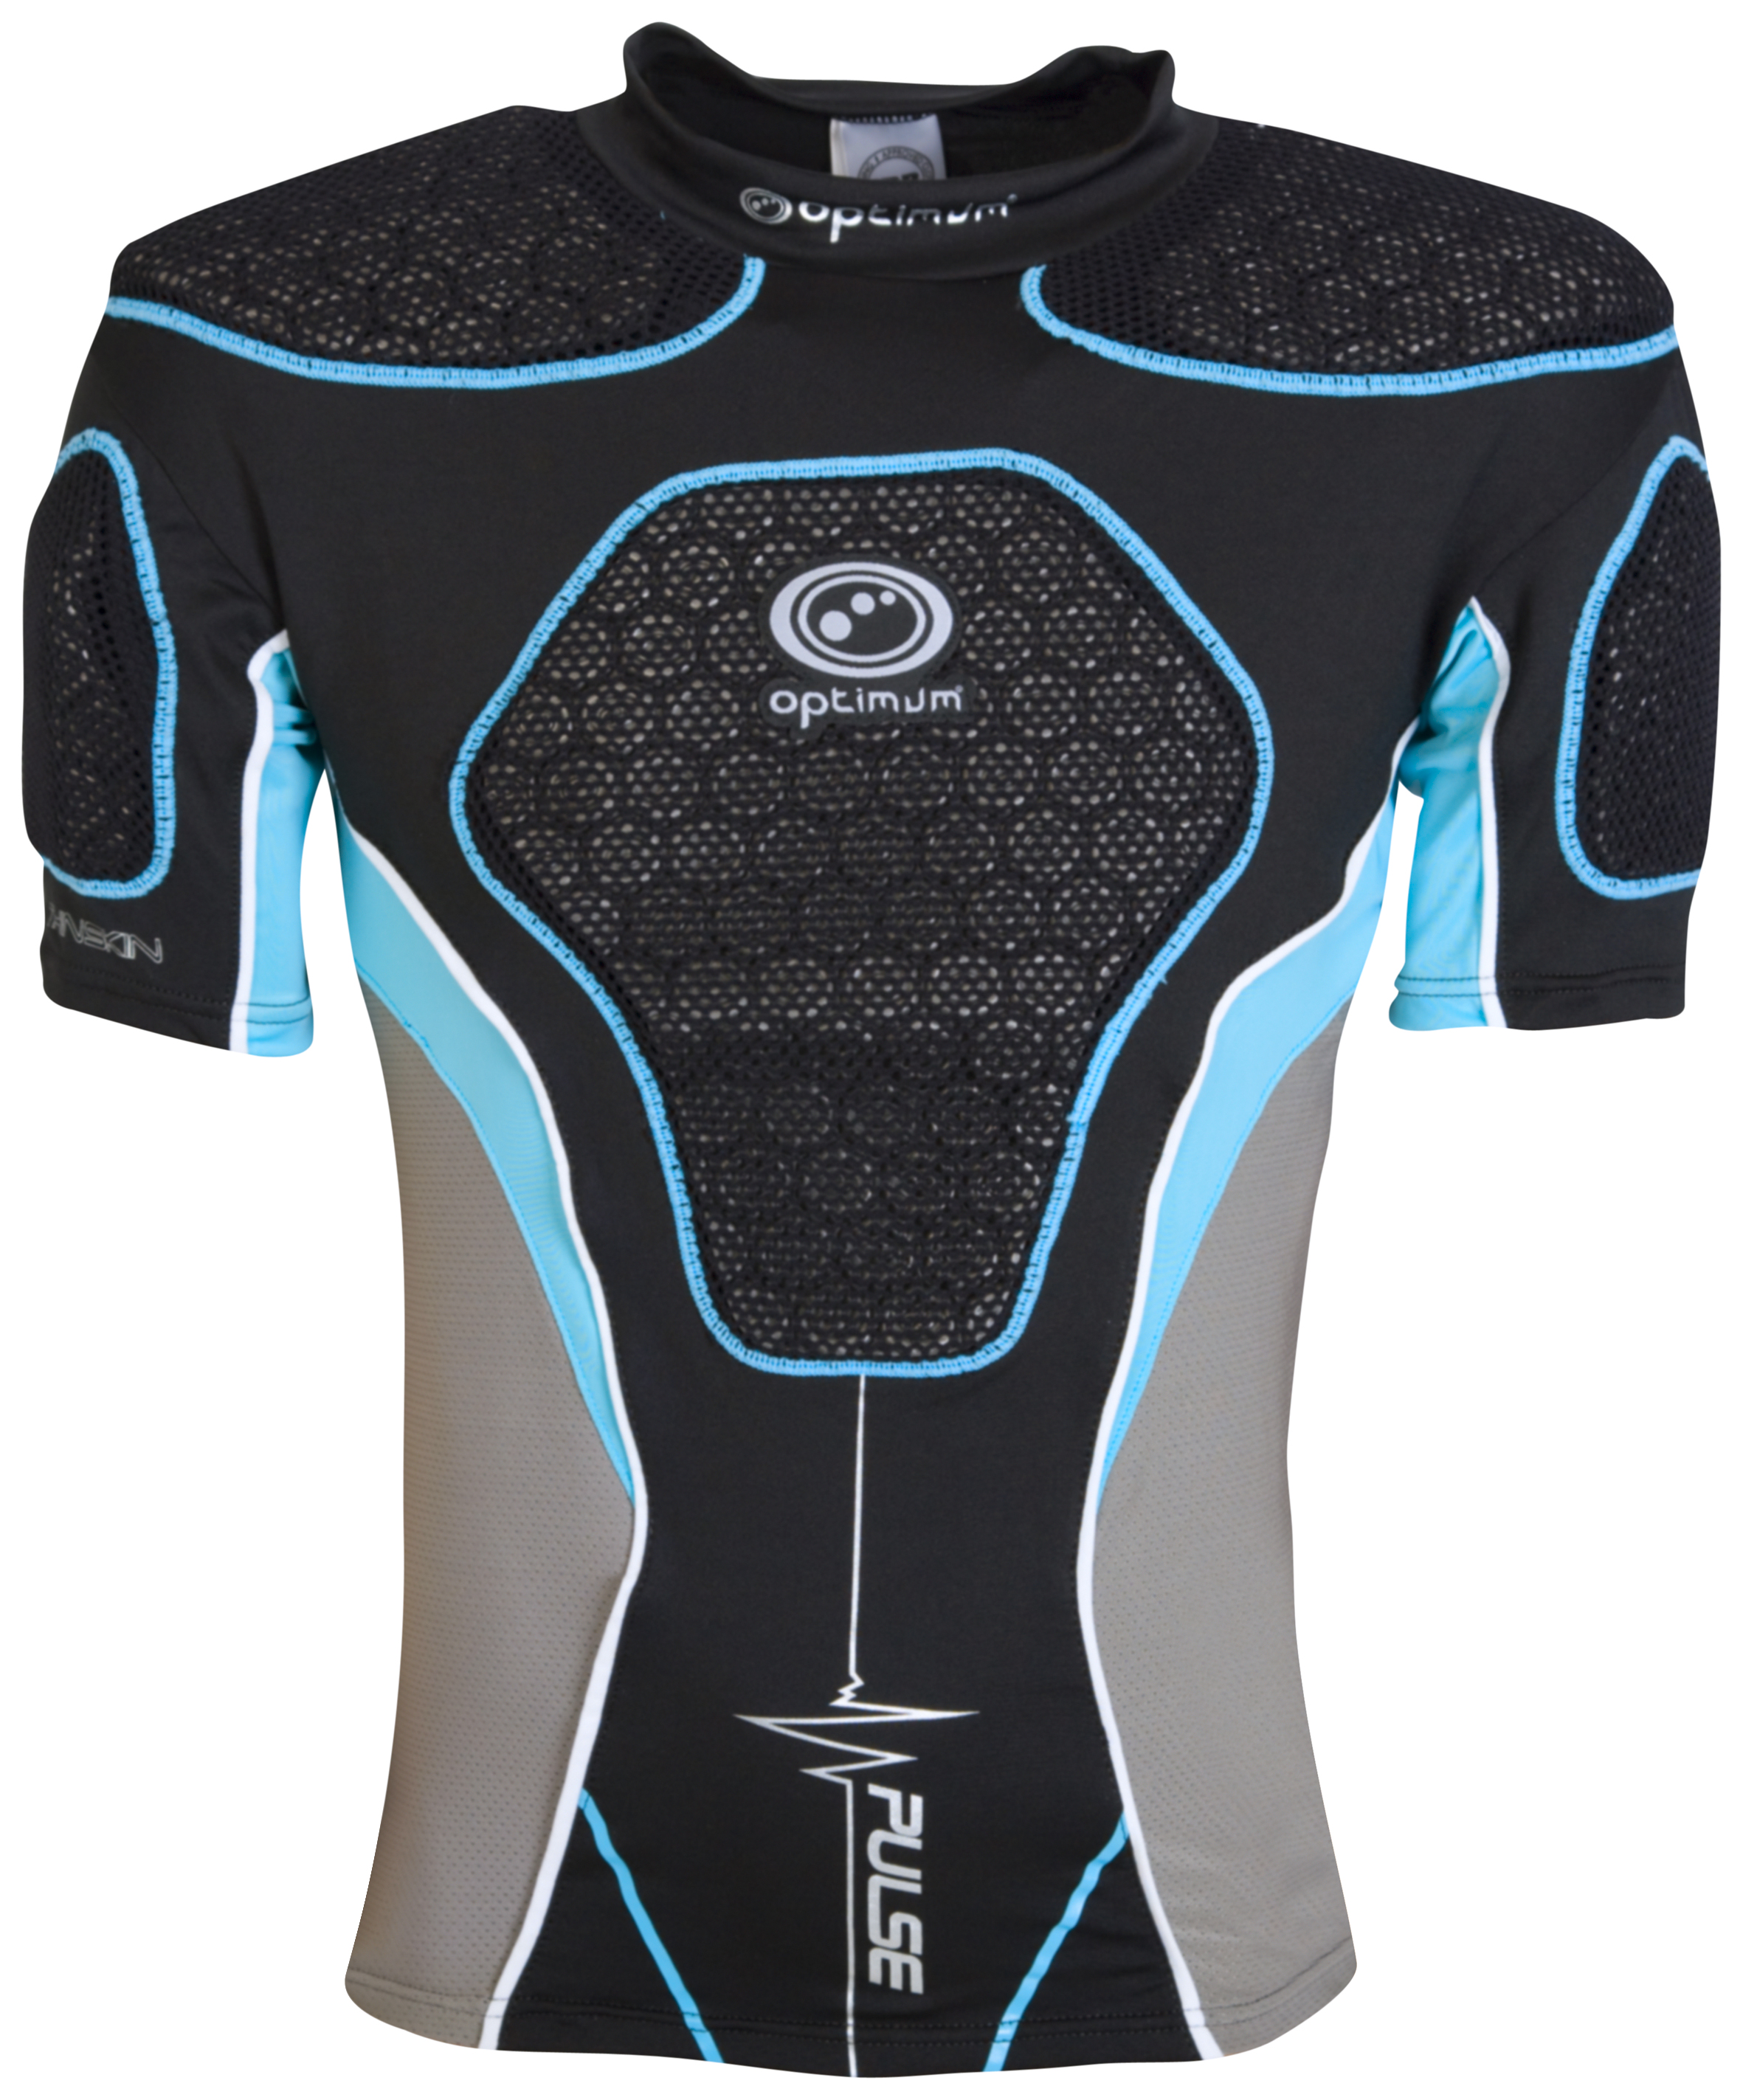 Optimum Pulse Protection Top - Black/Blue